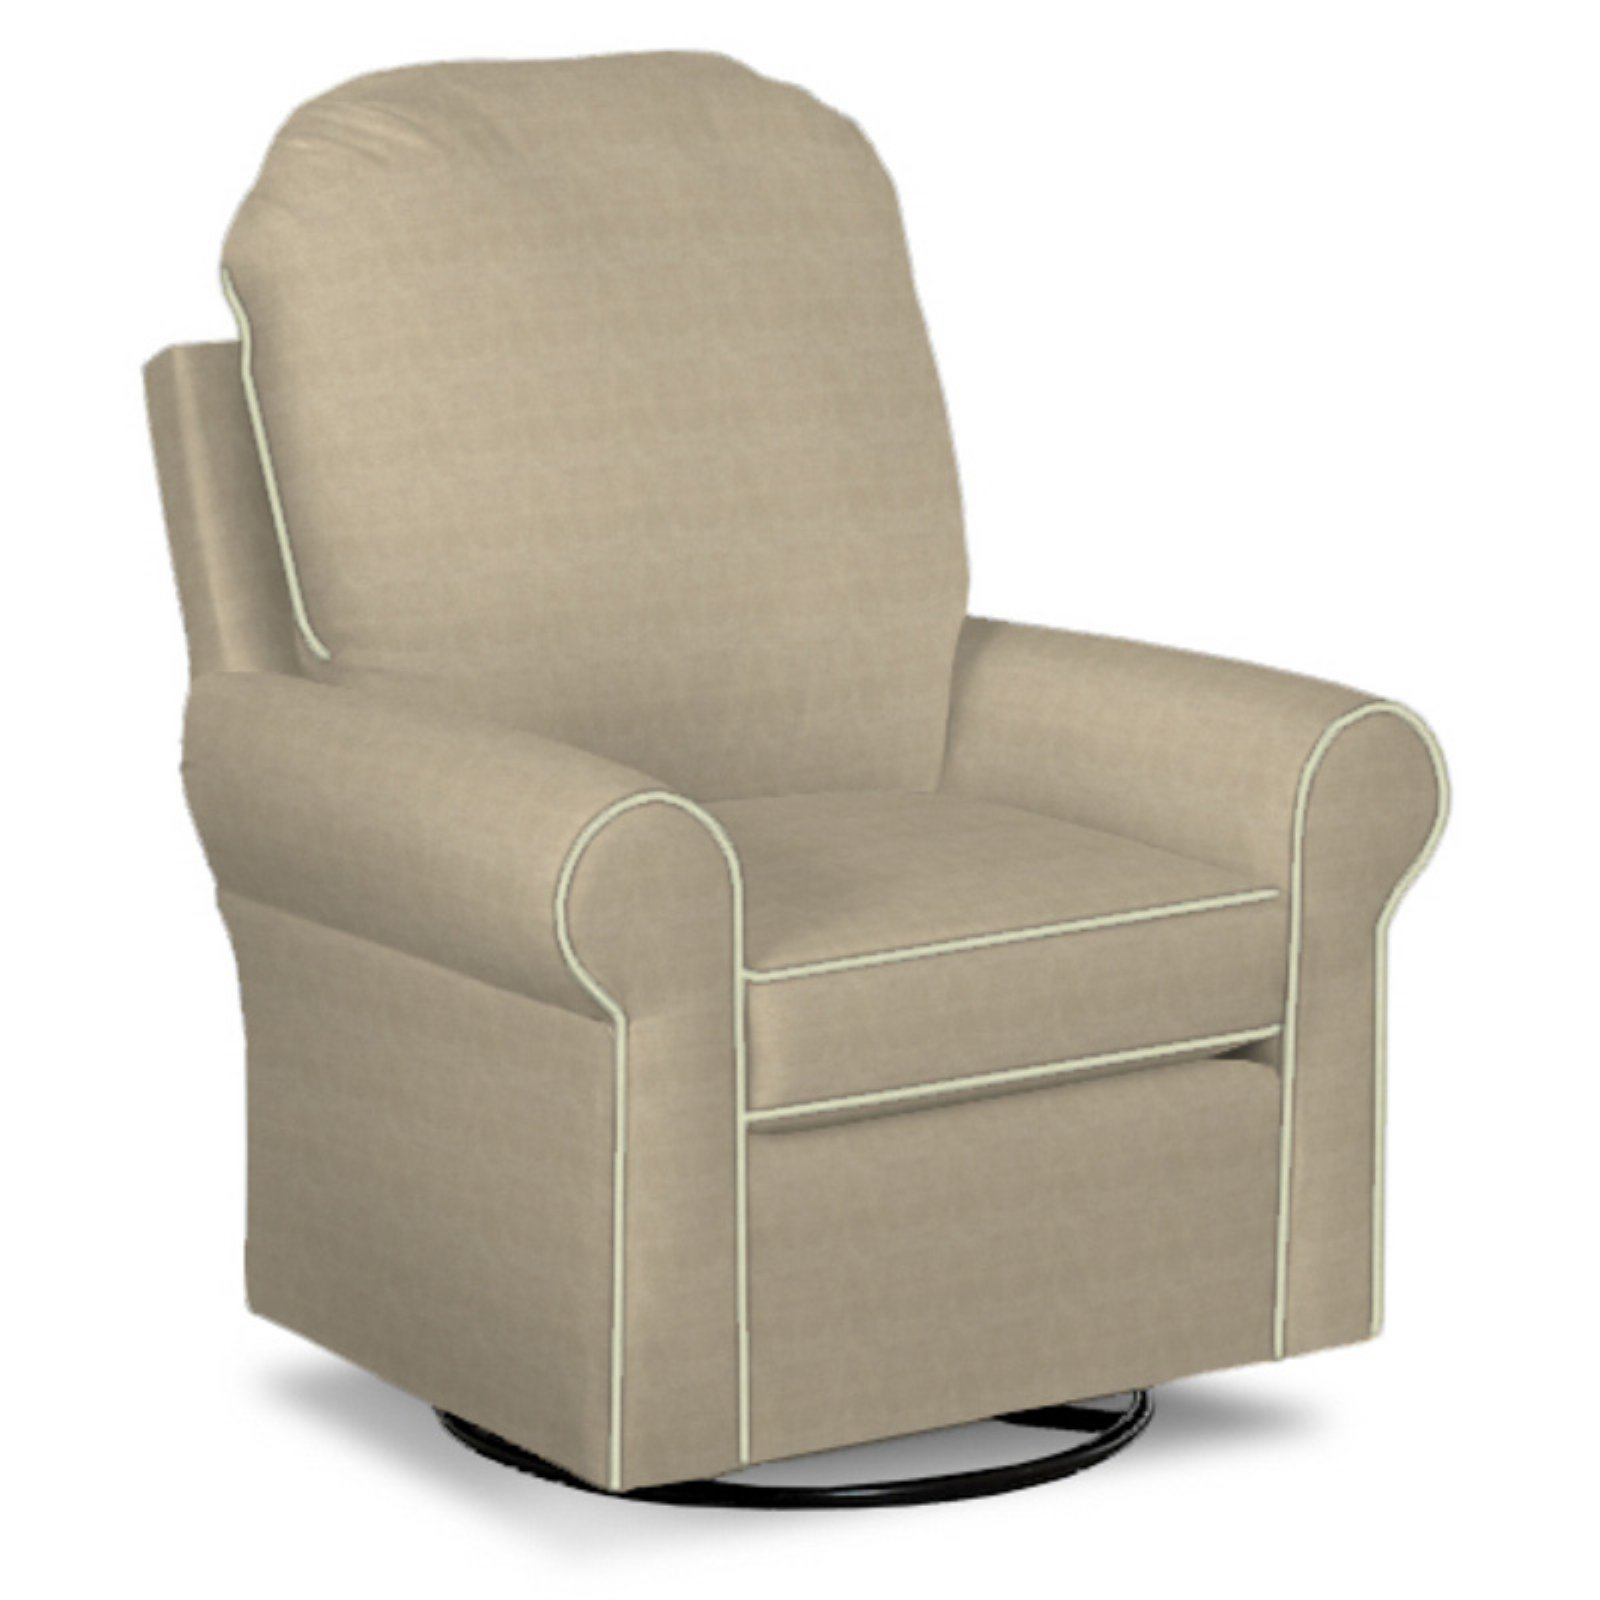 Nursery Classics by Klaussner Suffolk Swivel Gliding Rocker